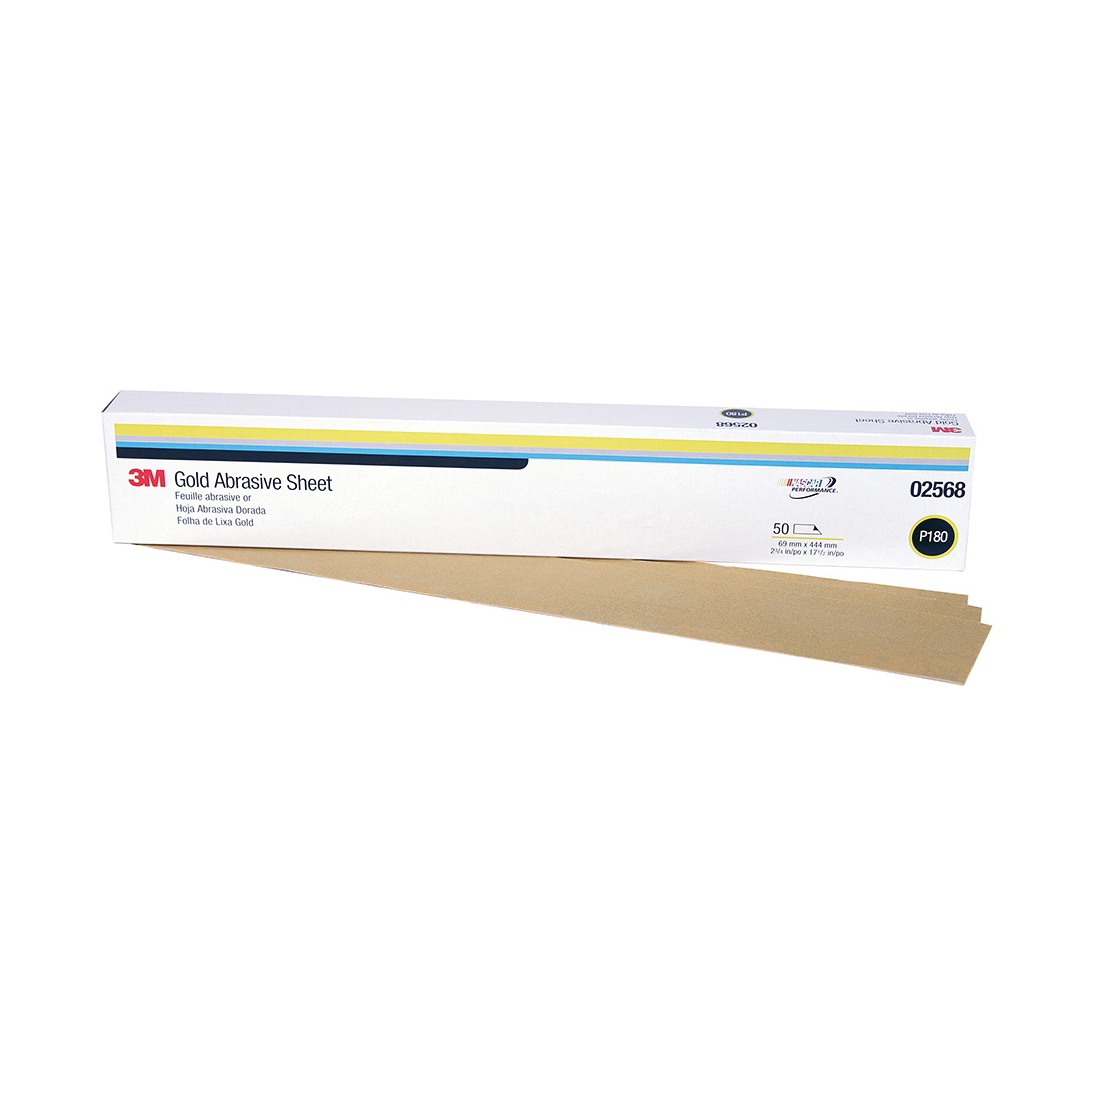 3M™ Production™ Resinite™ 051131-02568 216U Clip-On Coated Sanding Sheet, 17 in L x 2-3/4 in W, P180 Grit, Medium Grade, Aluminum Oxide Abrasive, Paper Backing